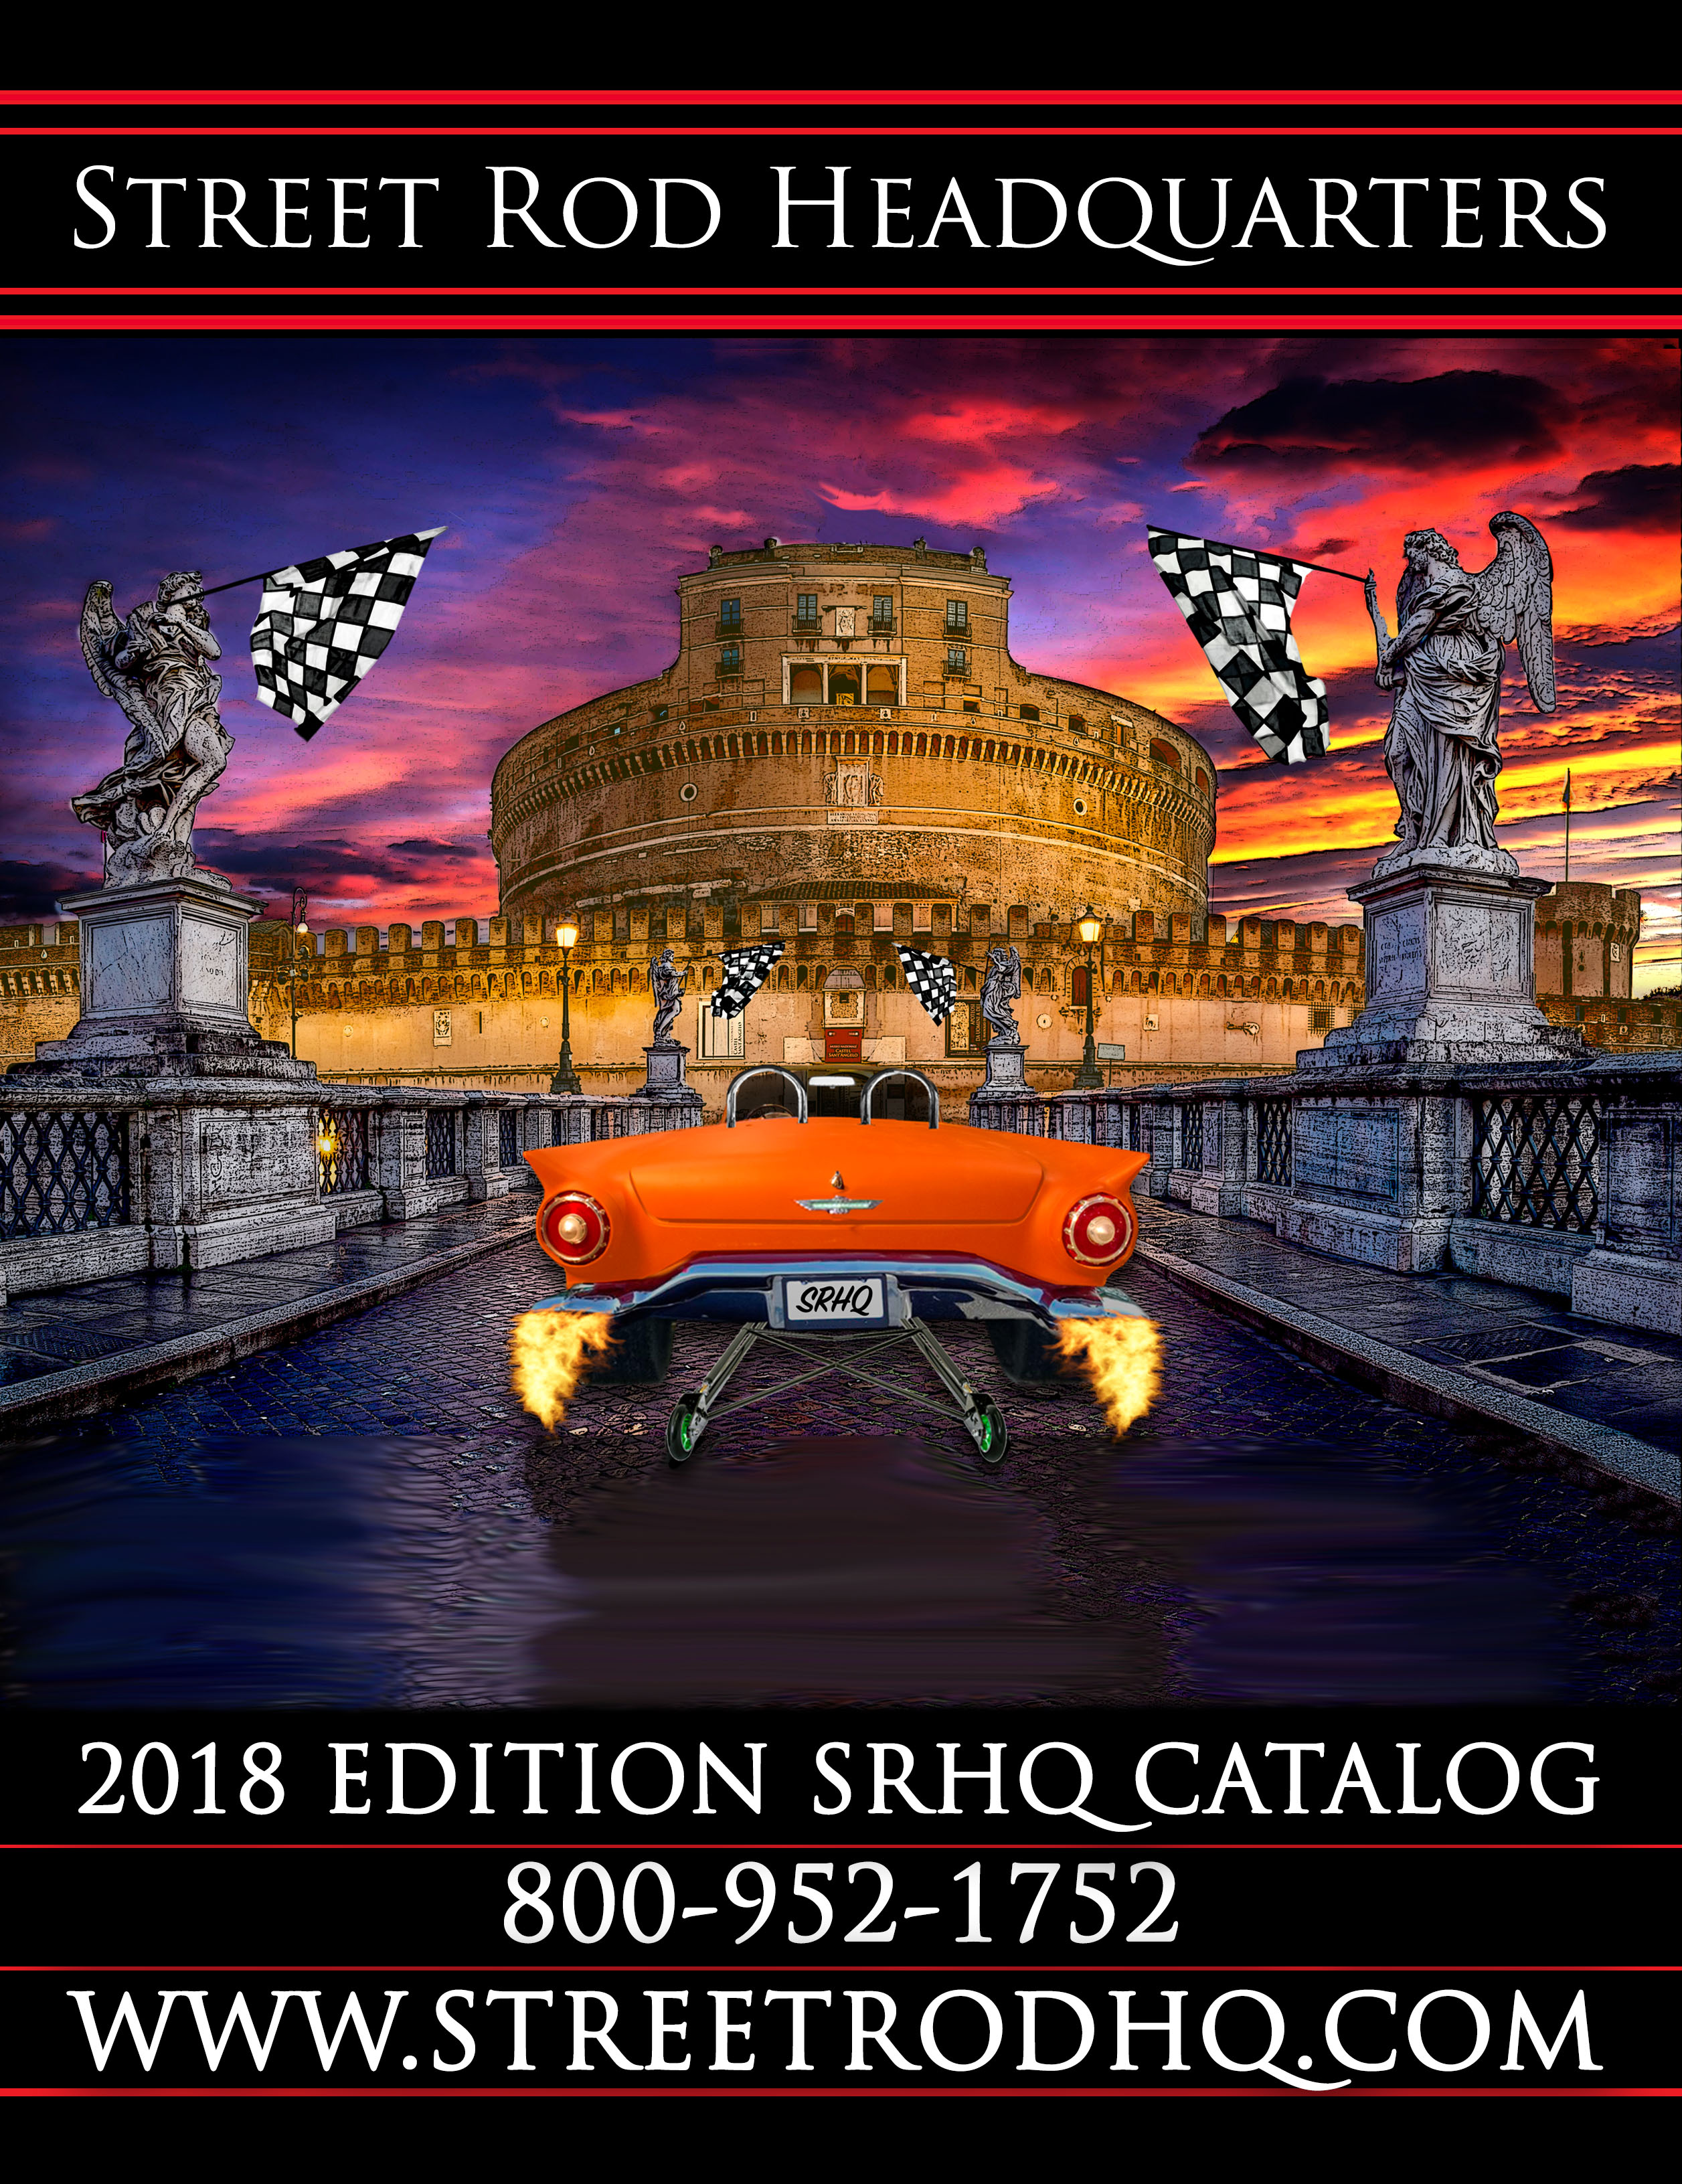 Street Rod Headquarters Catalog